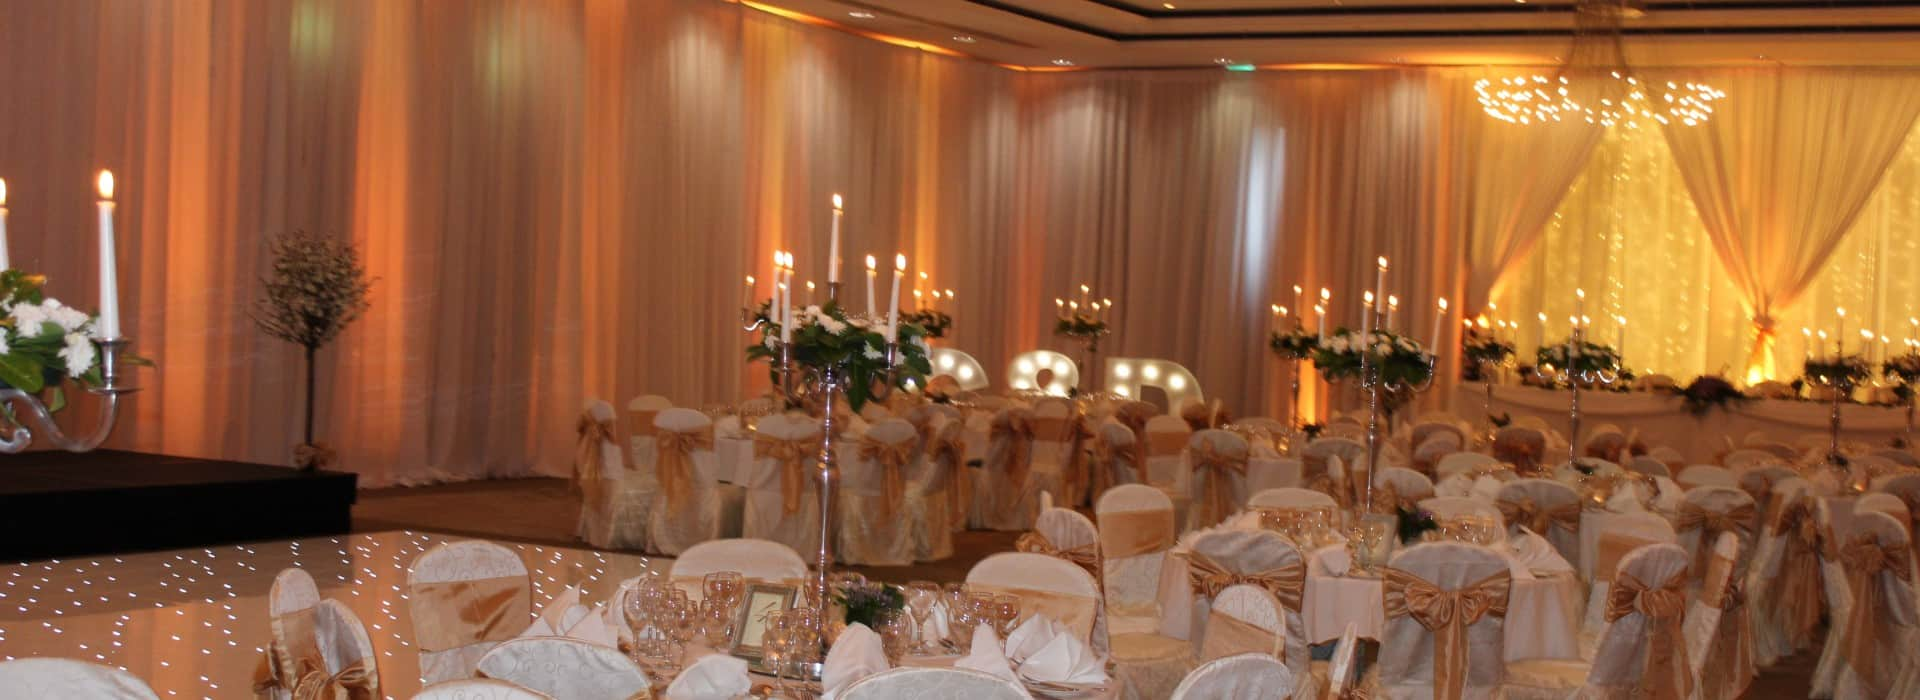 How Much Does Draping Cost For A Wedding Cost Of Draping